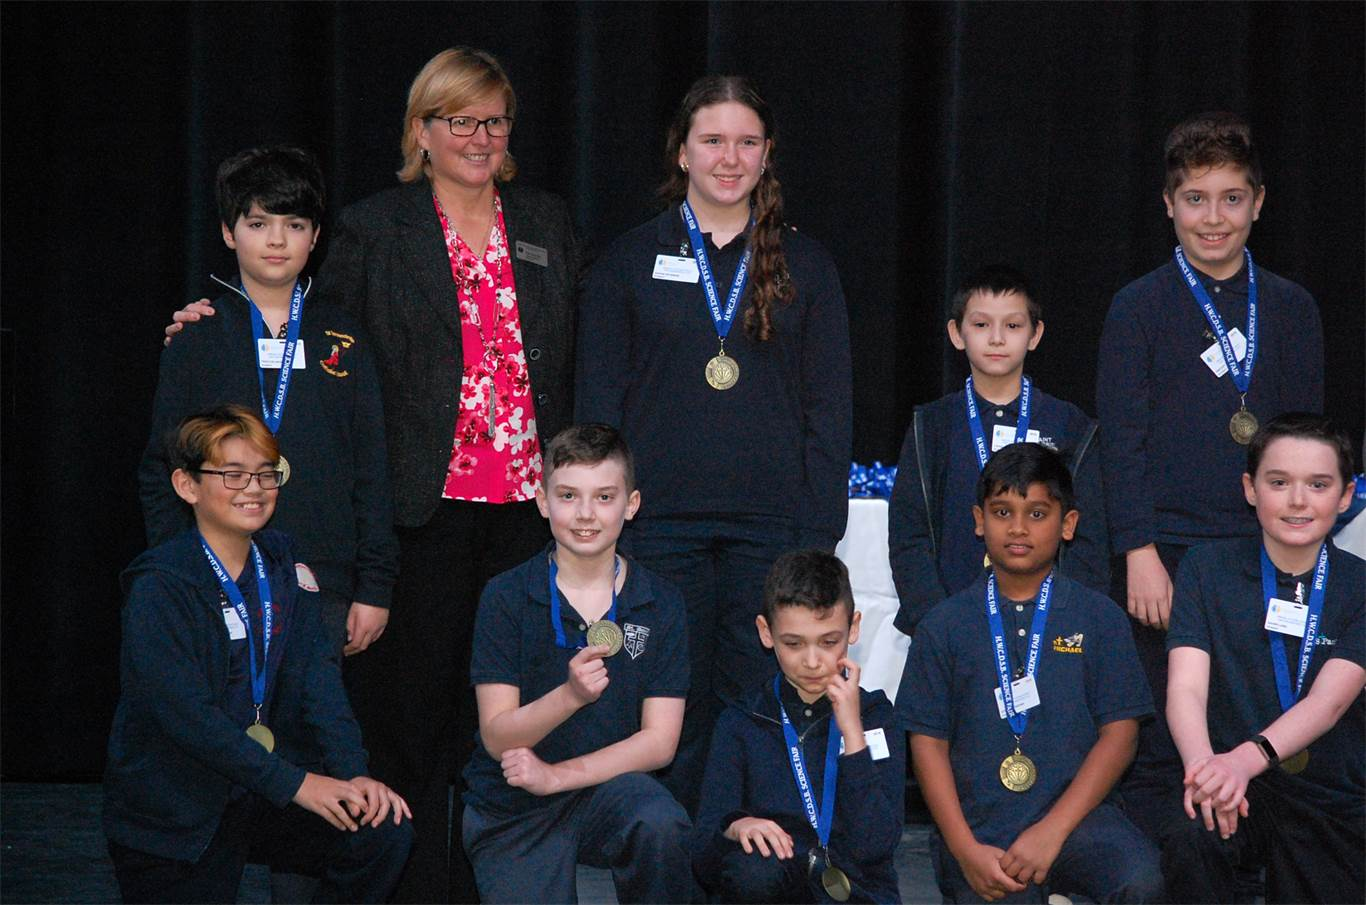 Awards ceremony recognizes top science and engineering projects at fair